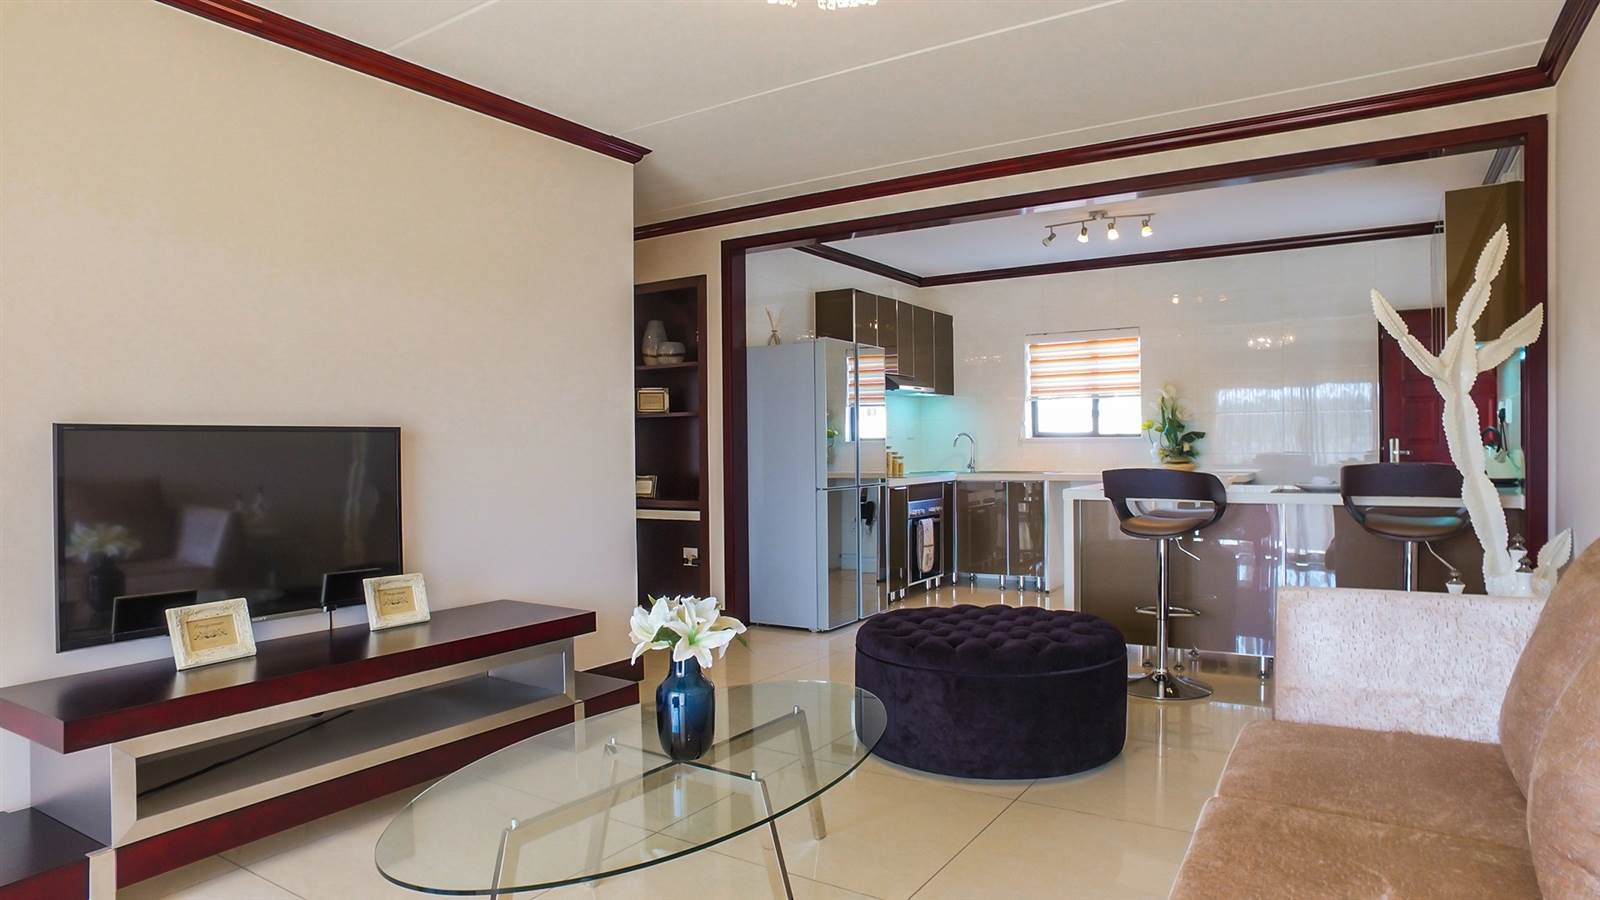 2 Bedroom Apartment for sale in Fourways ENT0040134 : photo#11